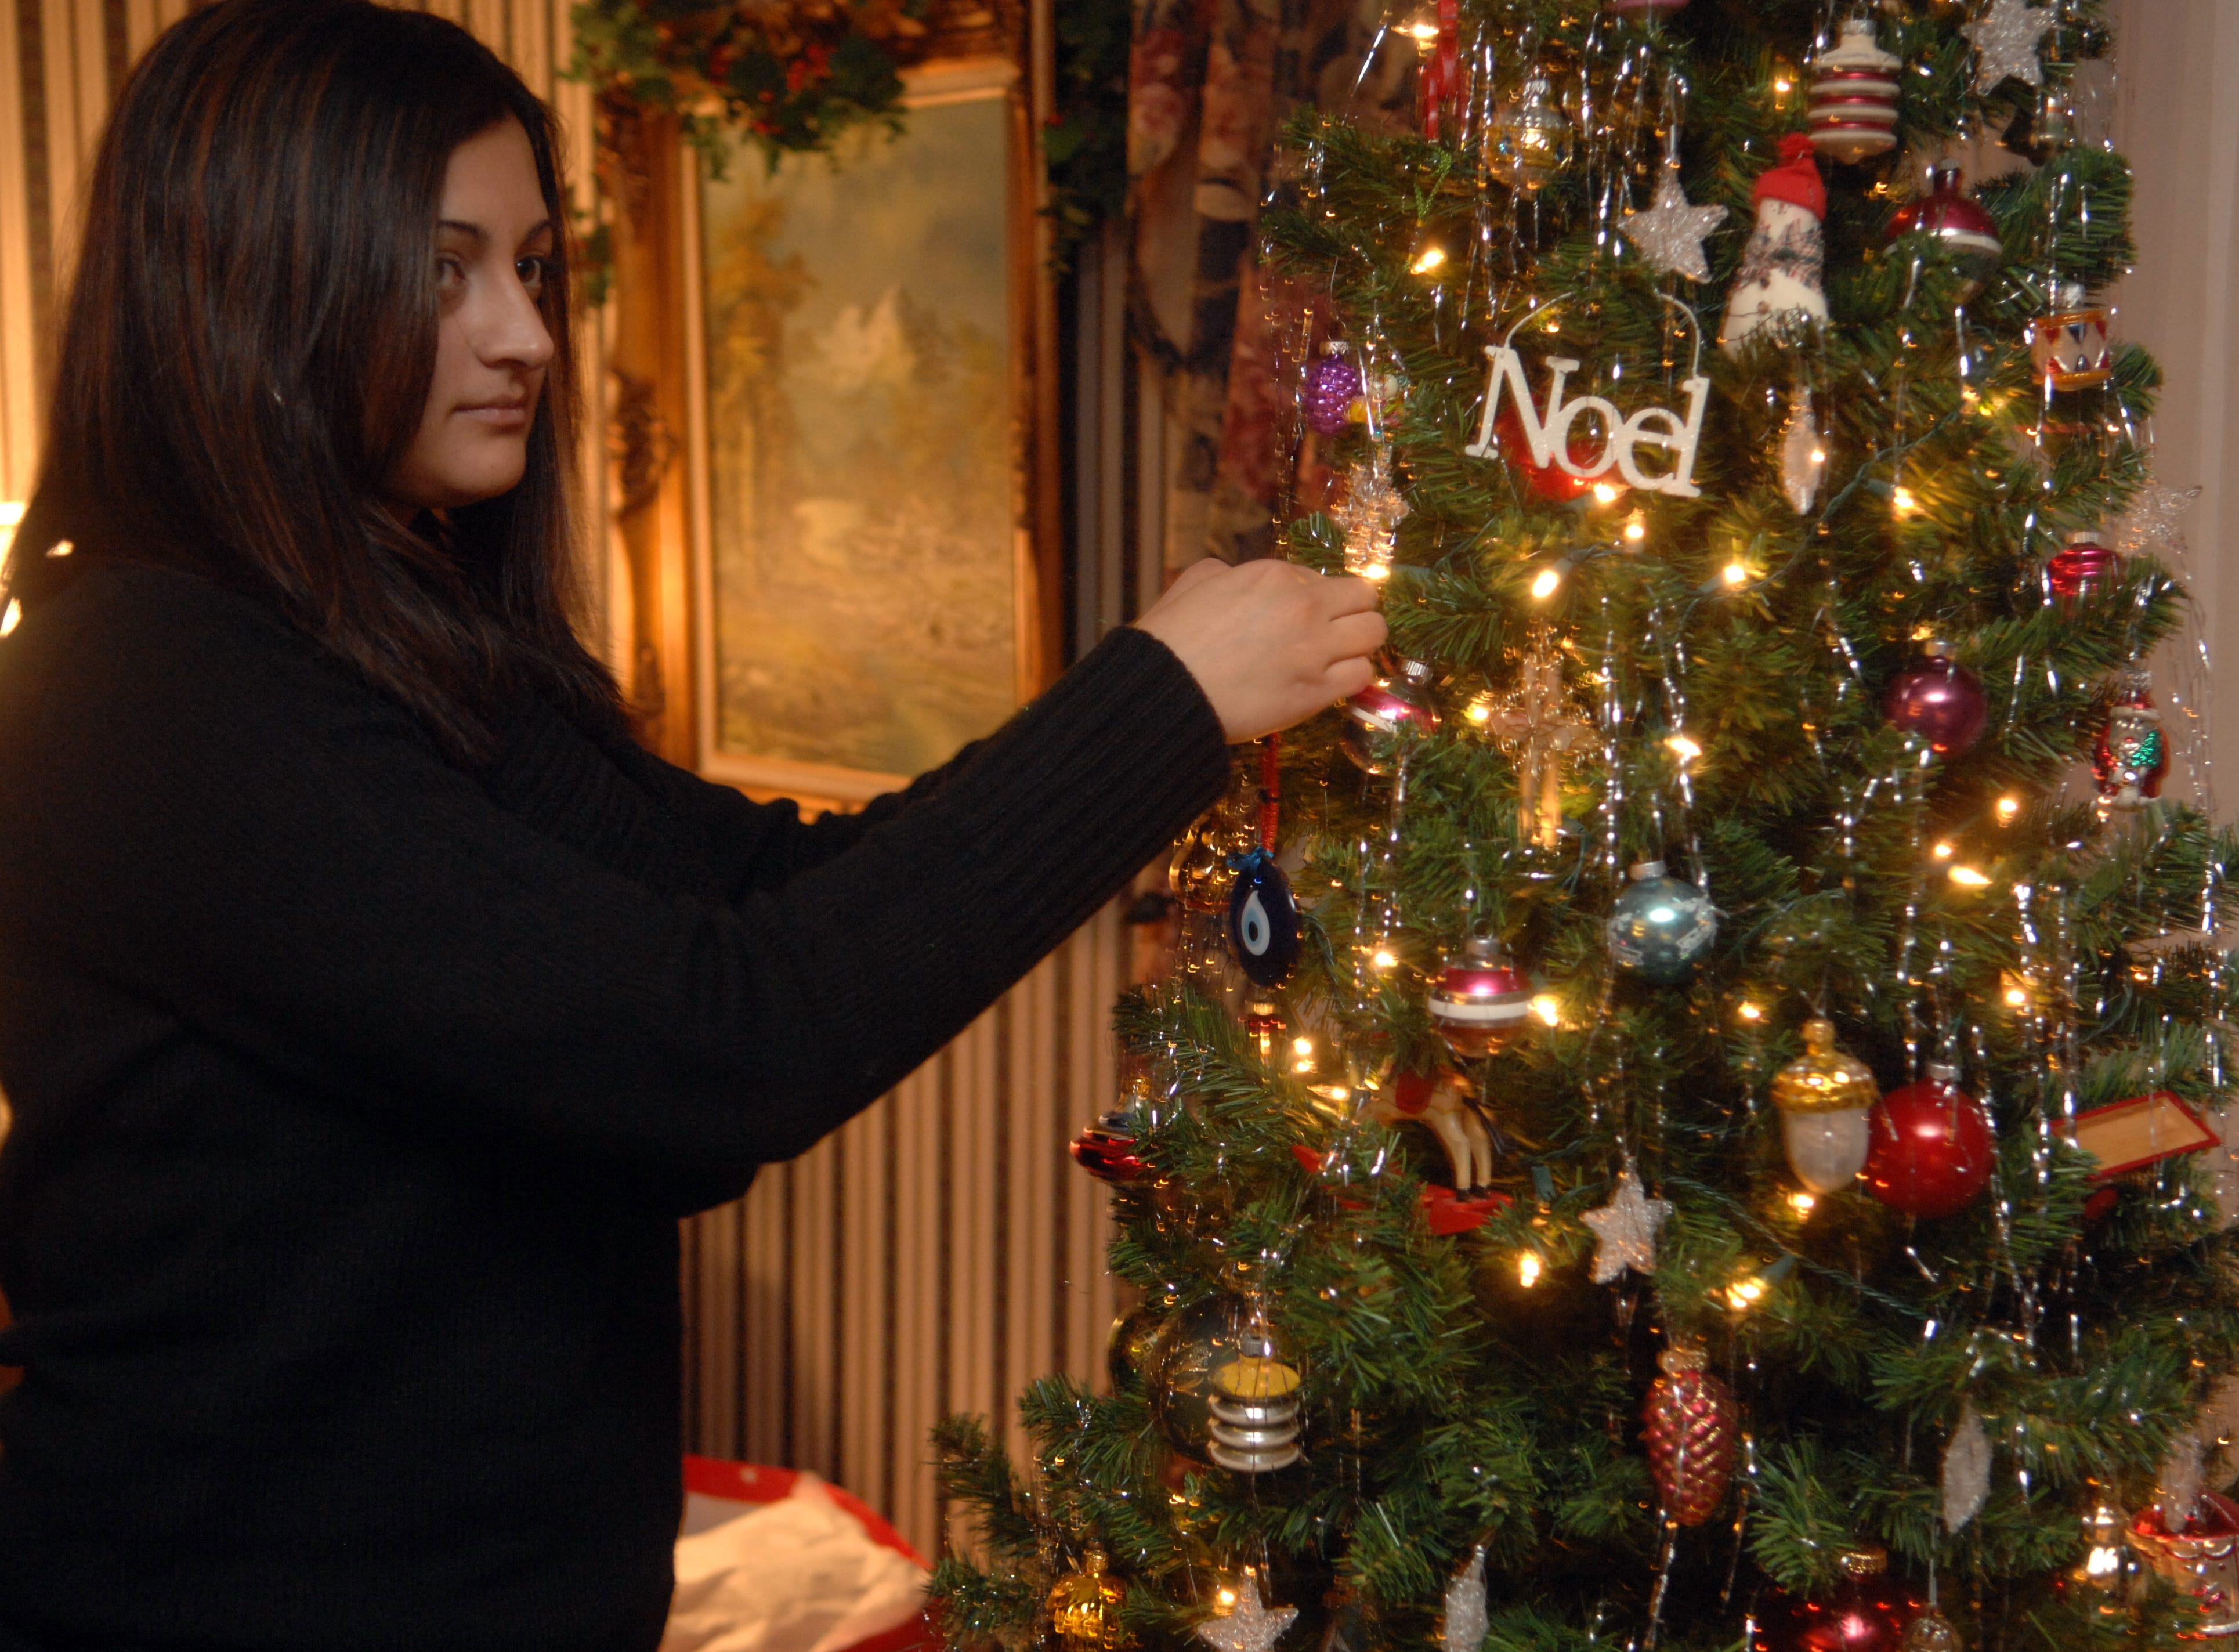 Gul Akyel of Canakkele, Turkey adds her special ornament to Carol Houston's Christmas tree at Carol Houston's home in Evansville recently.  Houston opens her home to share Christmas with international students from UE and USI each year.